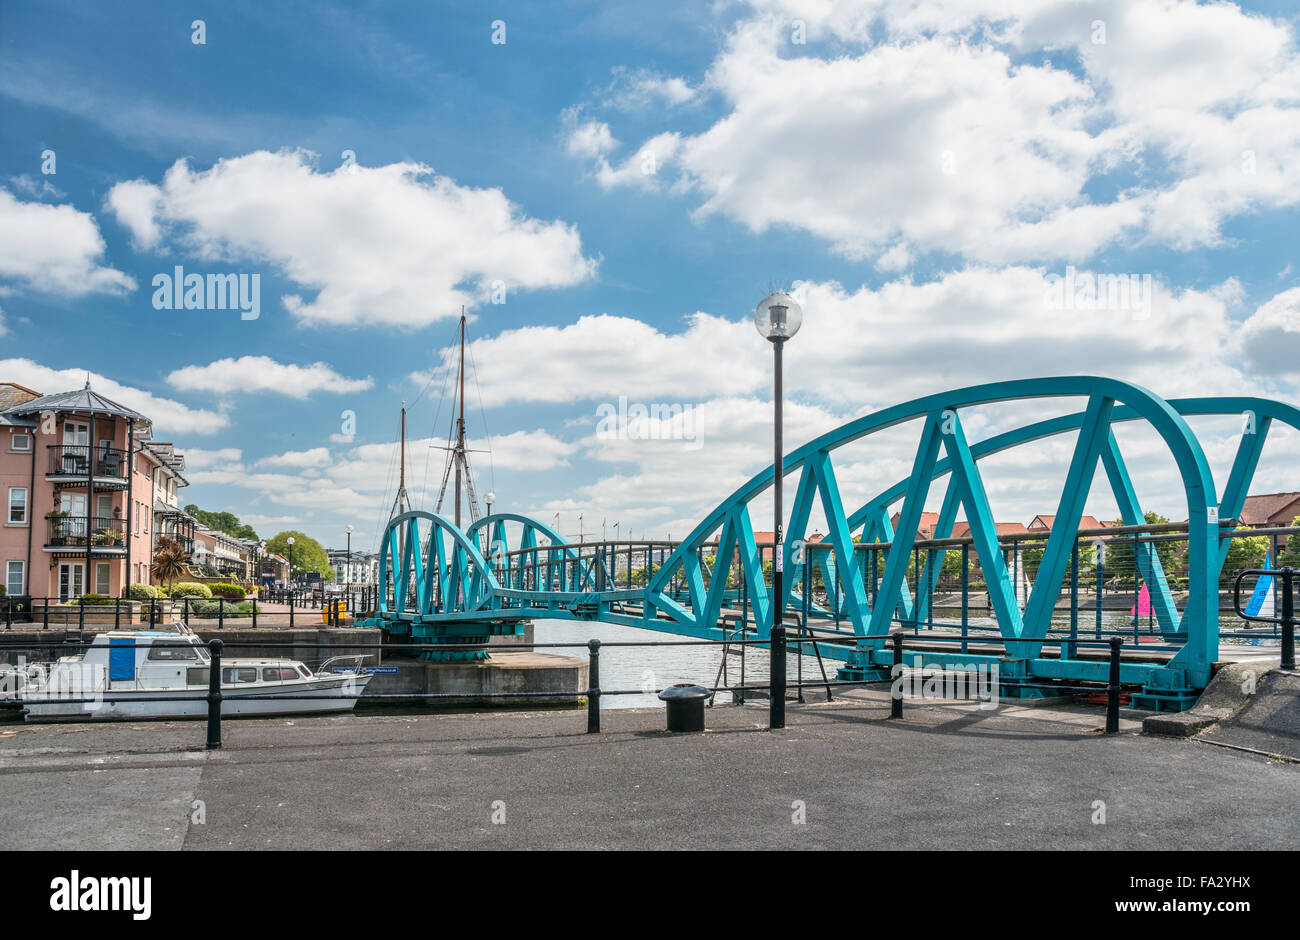 Junction Lock Bridge at the Floating Harbor, Bristol, Somerset, England, UK - Stock Image